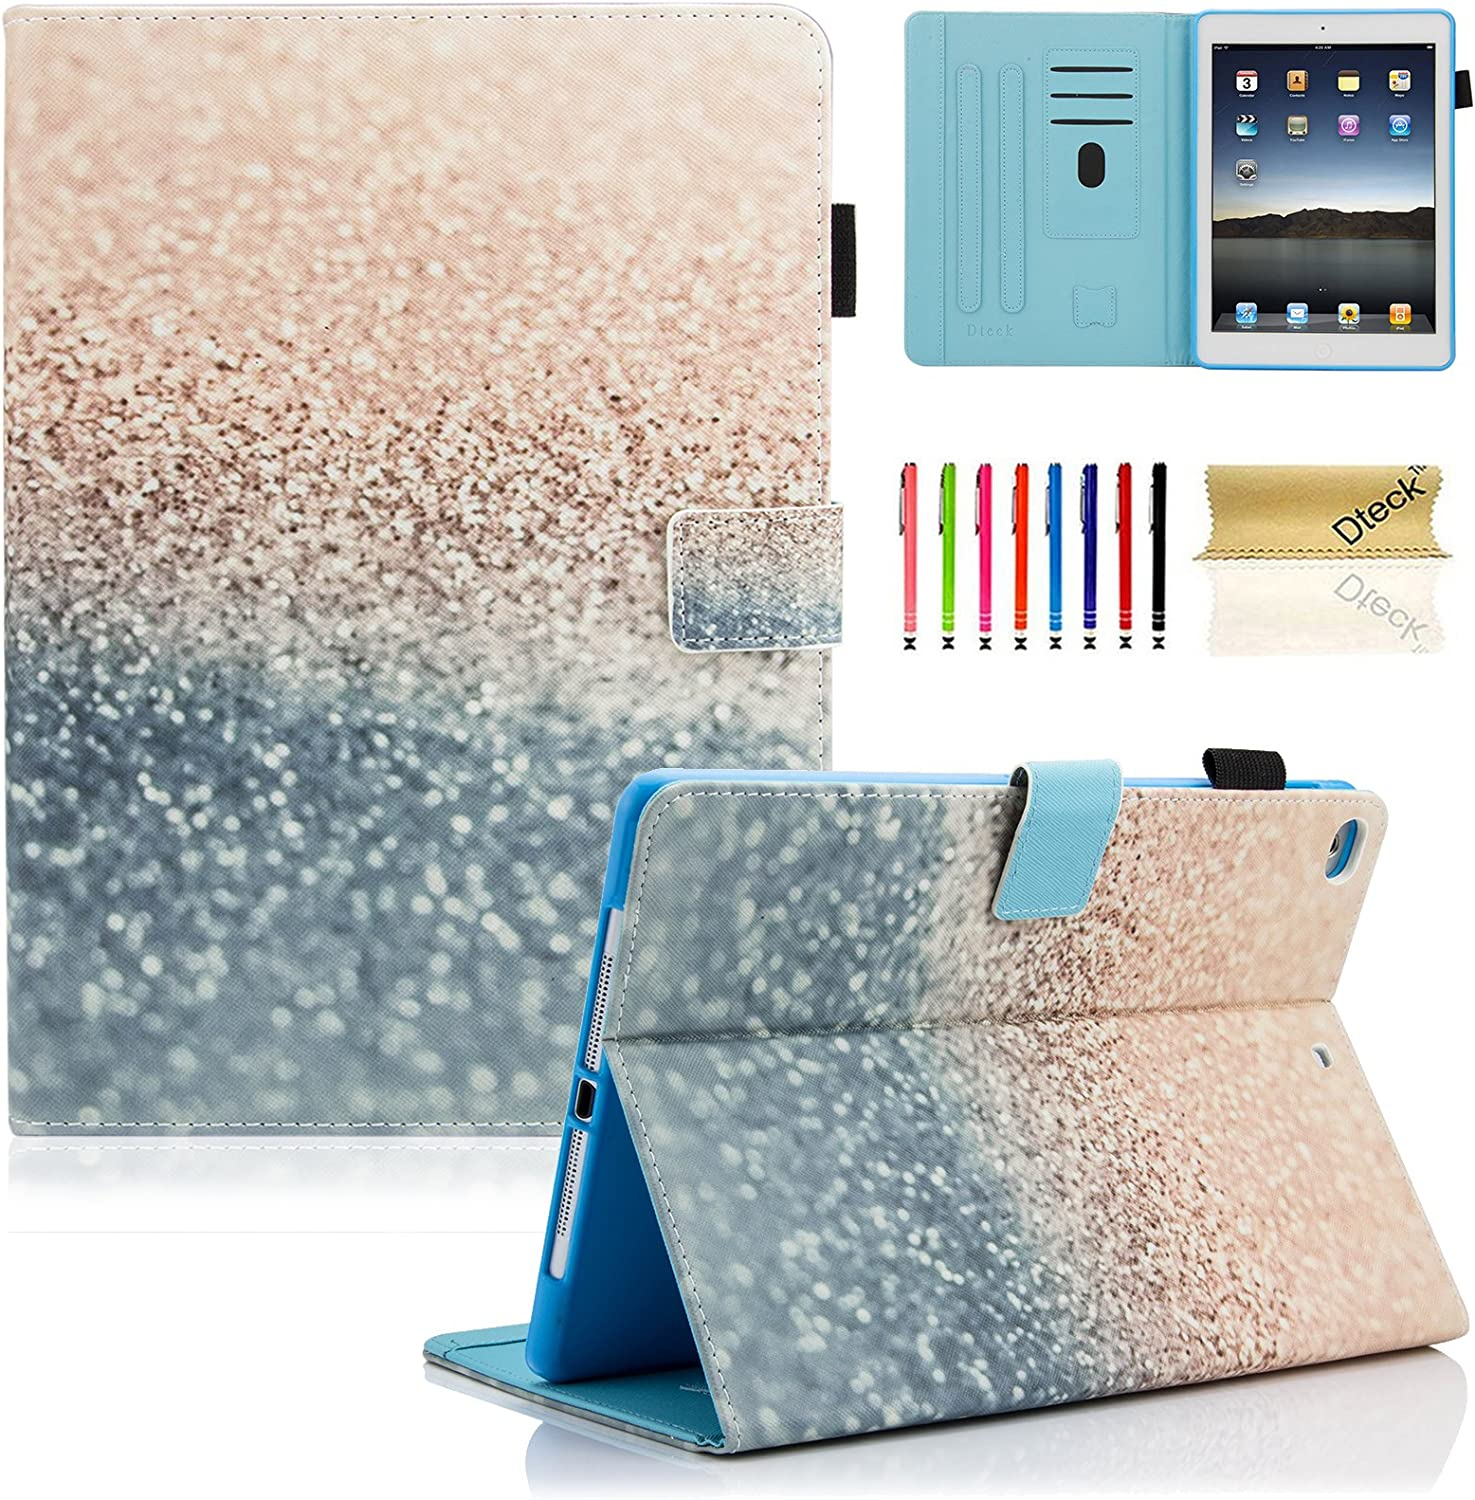 iPad 9.7 inch 2018 2017 Case / iPad Air Case / iPad Air 2 Case, Dteck PU Leather Folio Smart Cover with Auto Sleep Wake Stand Wallet Case for Apple iPad 6th / 5th Gen,iPad Air 1 / 2, Beach Sand